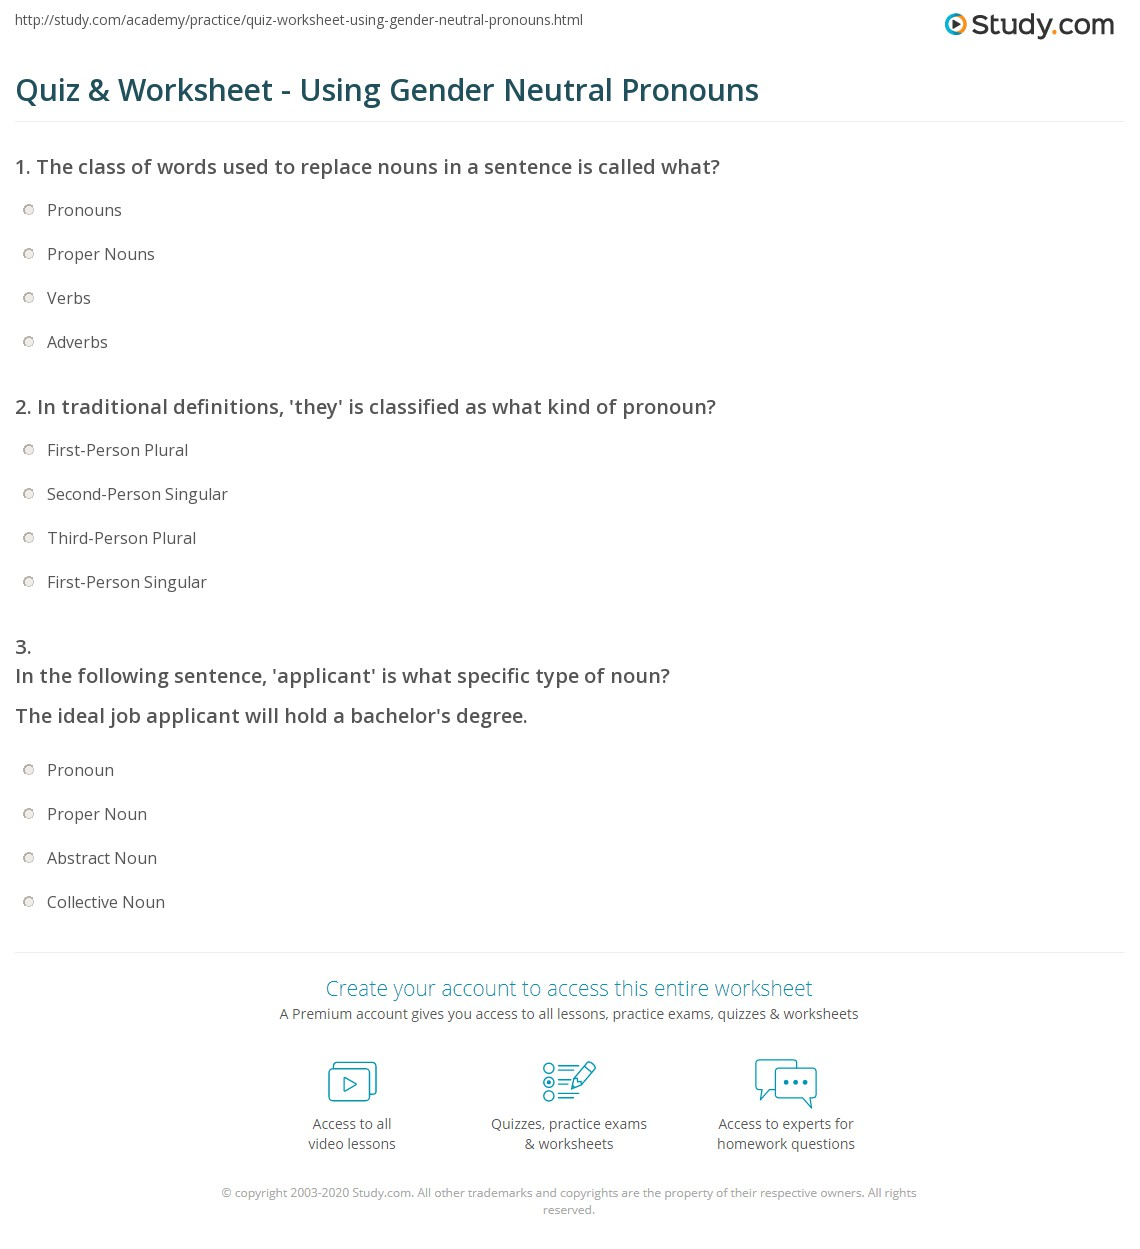 Gender Nouns Worksheets | Printable Worksheets and ...